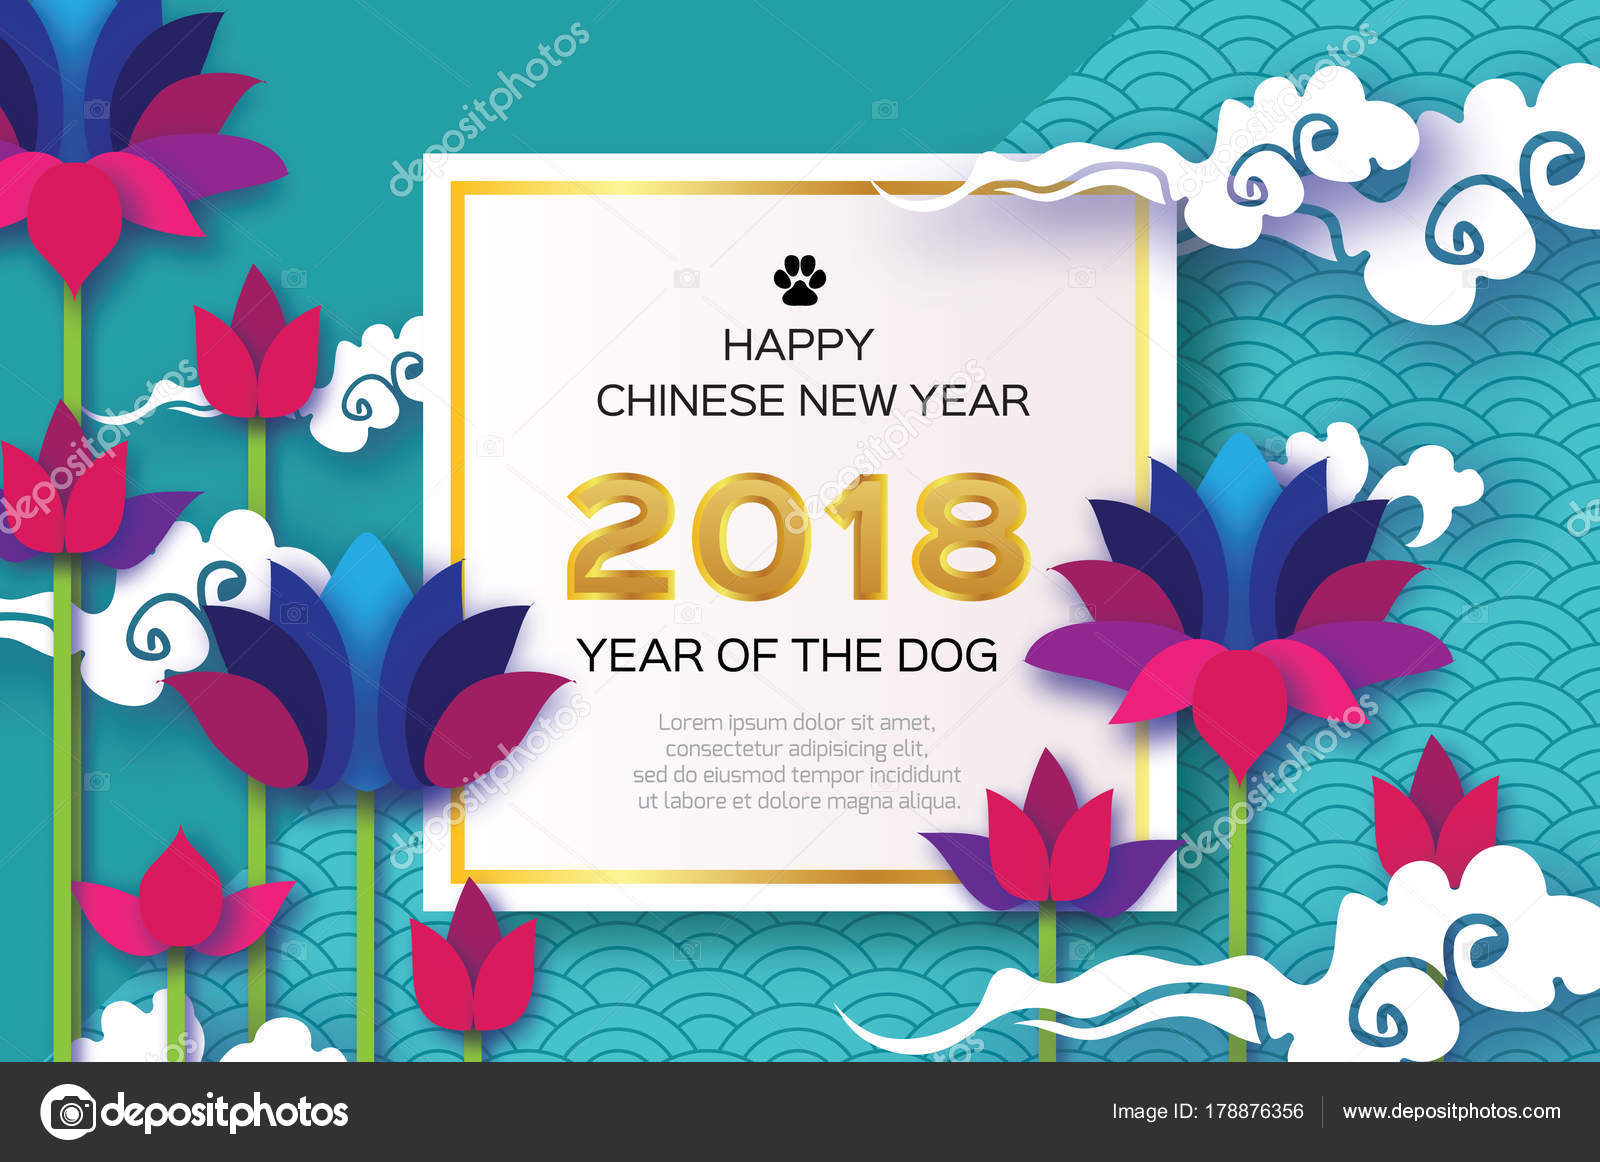 Beautiful origami waterlily or lotus flower happy chinese new year beautiful origami waterlily or lotus flower happy chinese new year 2018 greeting card year of the dog text square frame graceful floral background in izmirmasajfo